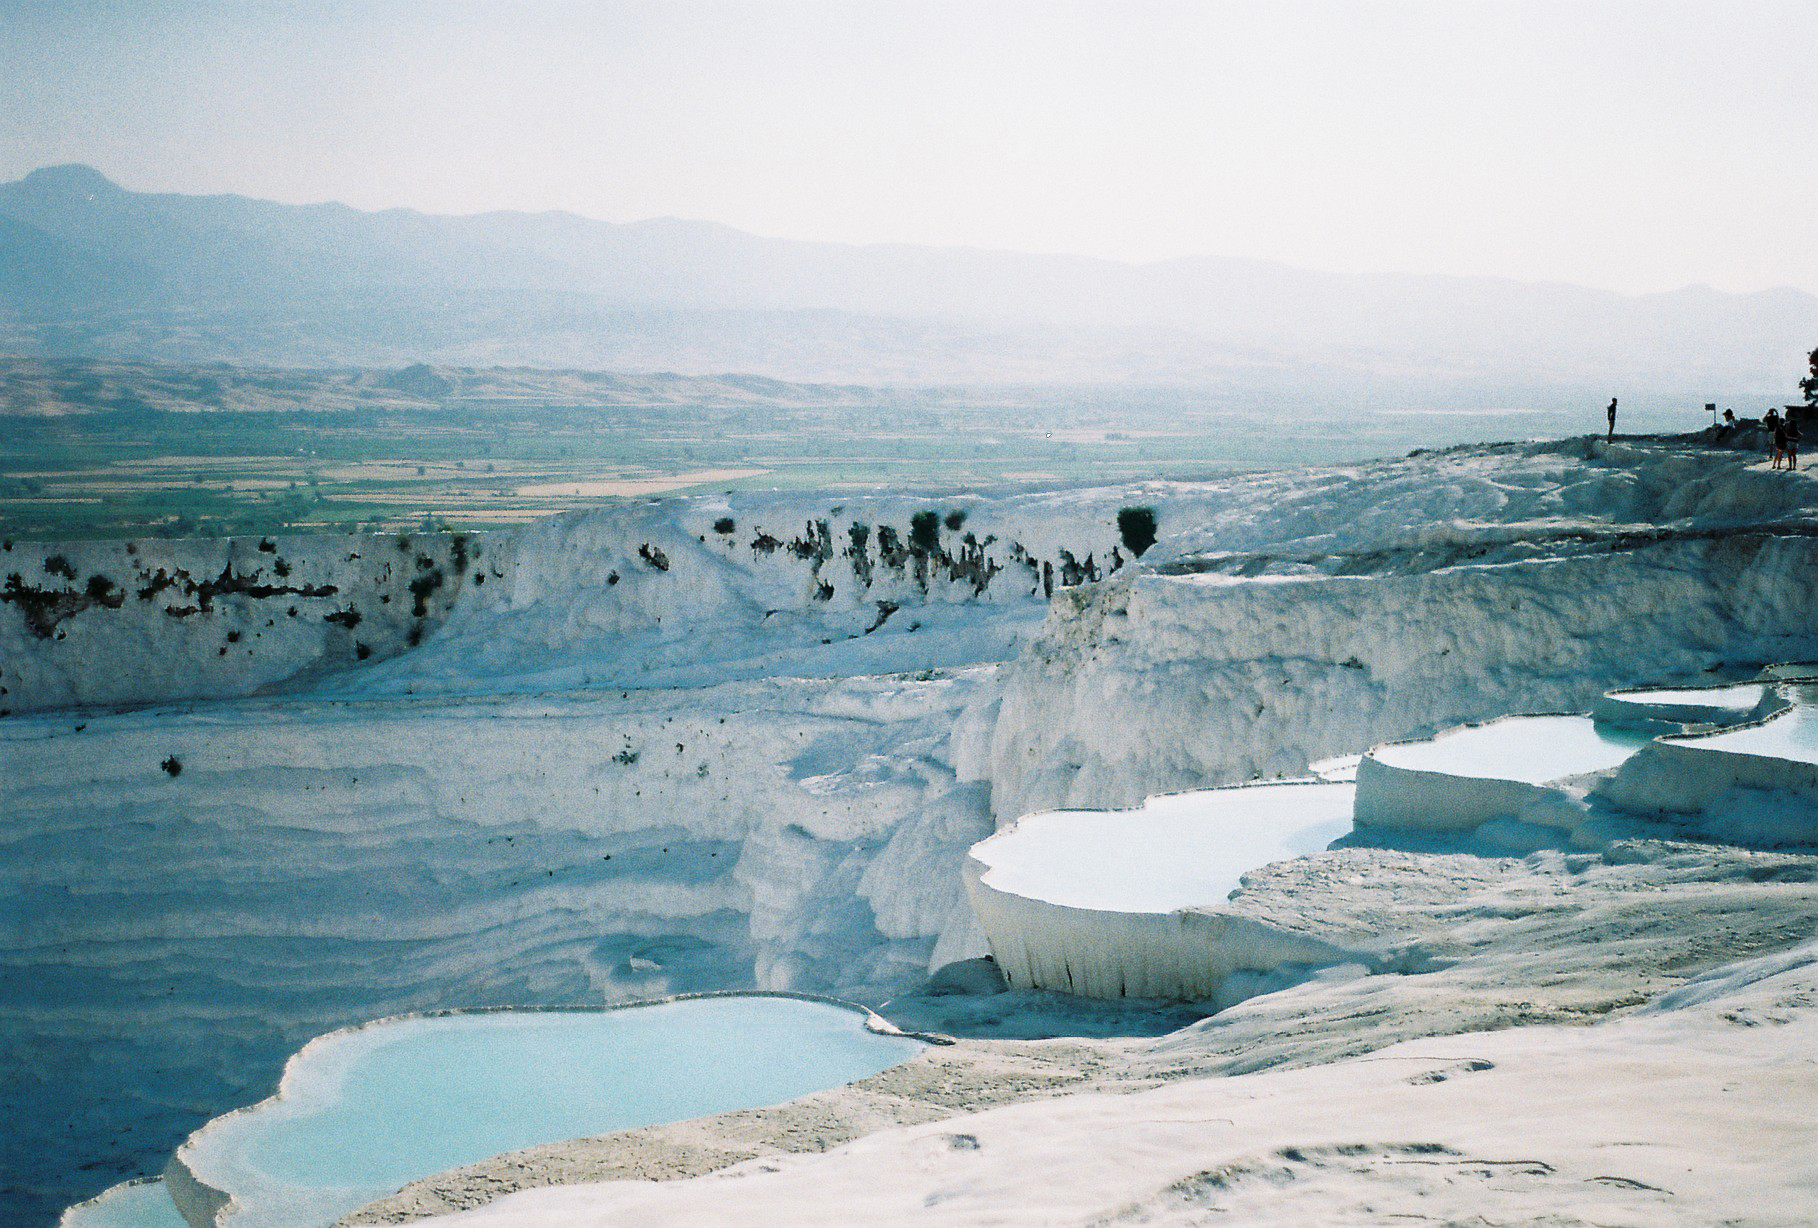 Pamukkale – (Cotton Castle)